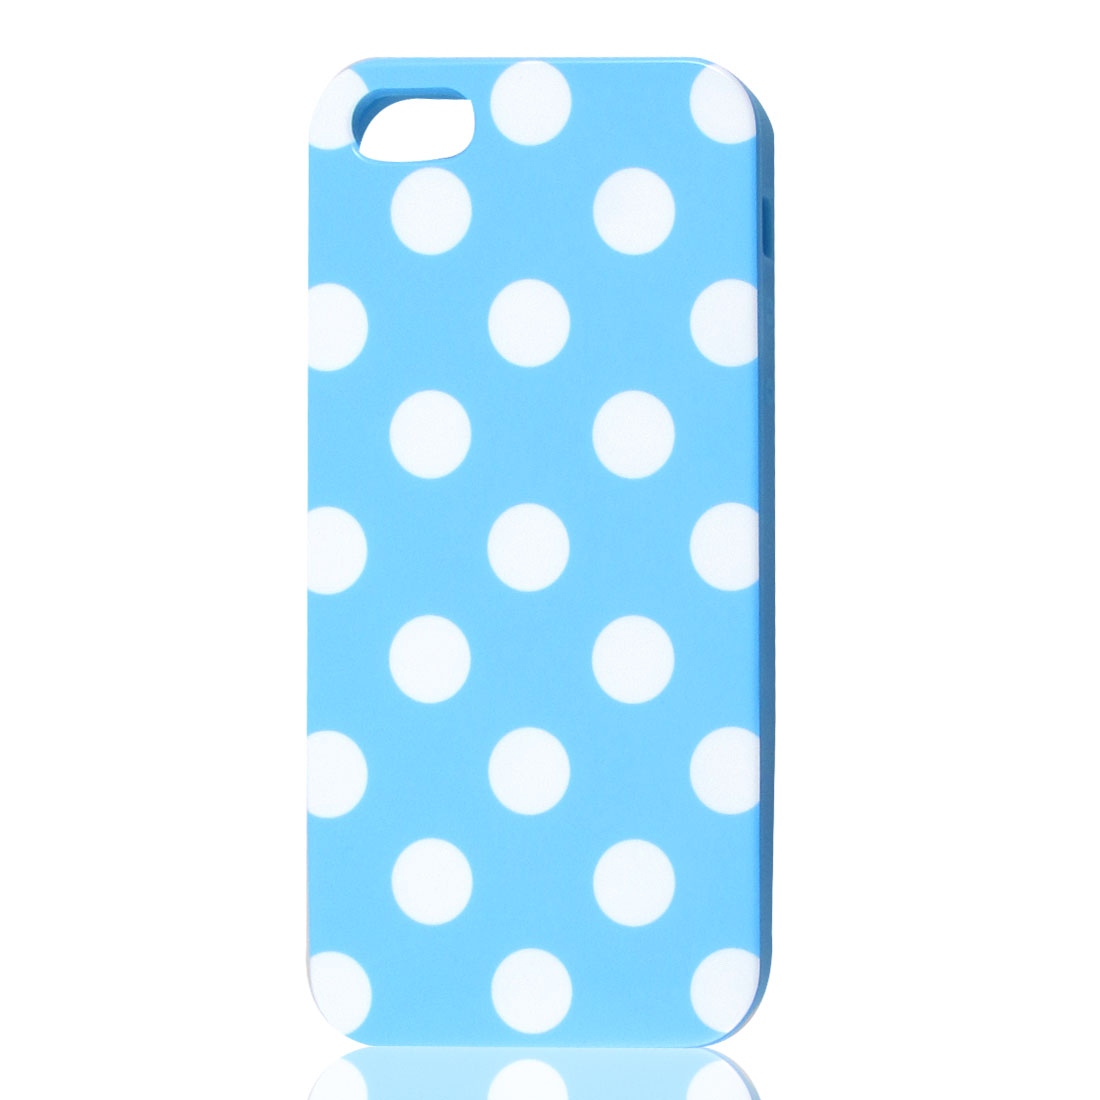 White Polka Dot Light Blue Plastic TPU Phone Case Cover for Apple iPhone 5 5G